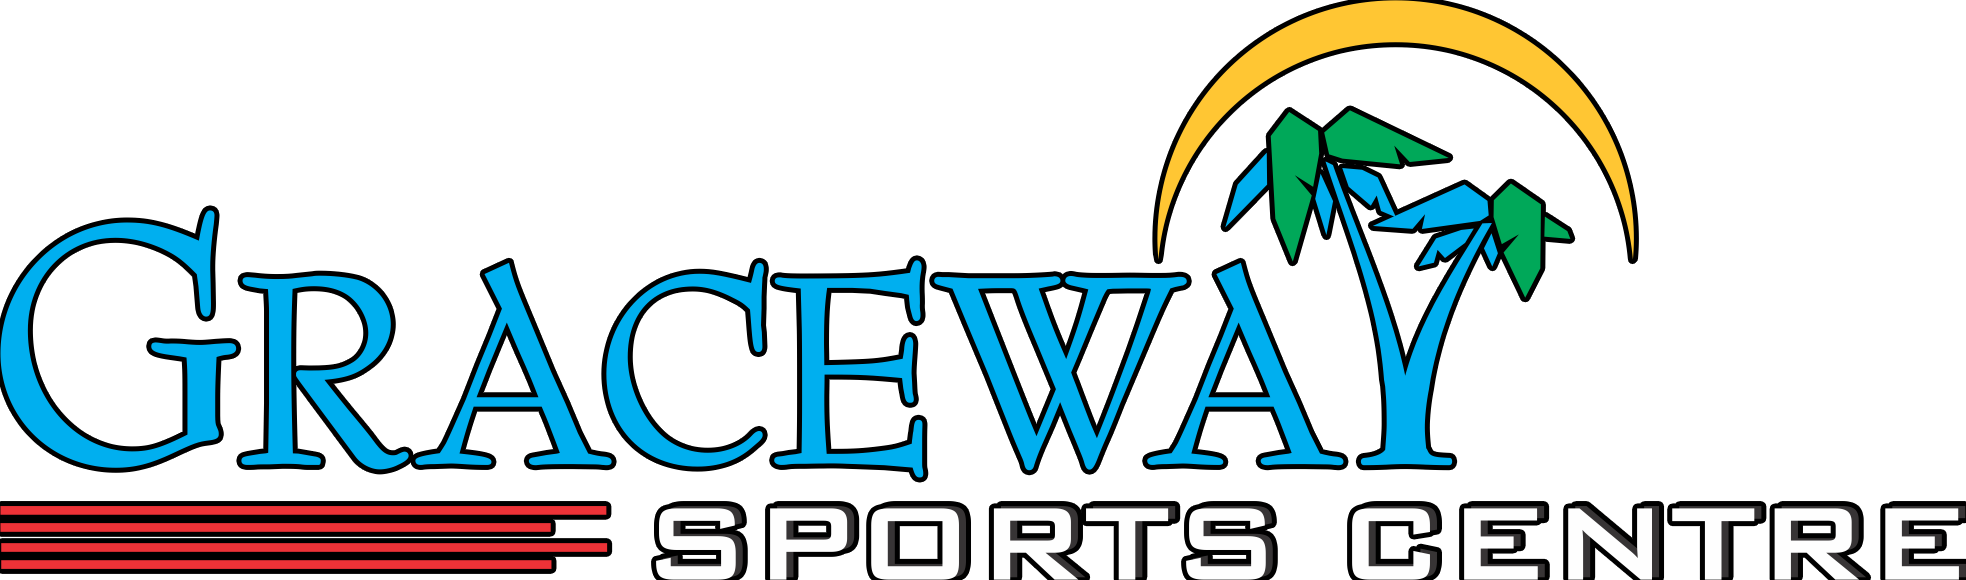 Basketball | Graceway Sports Center